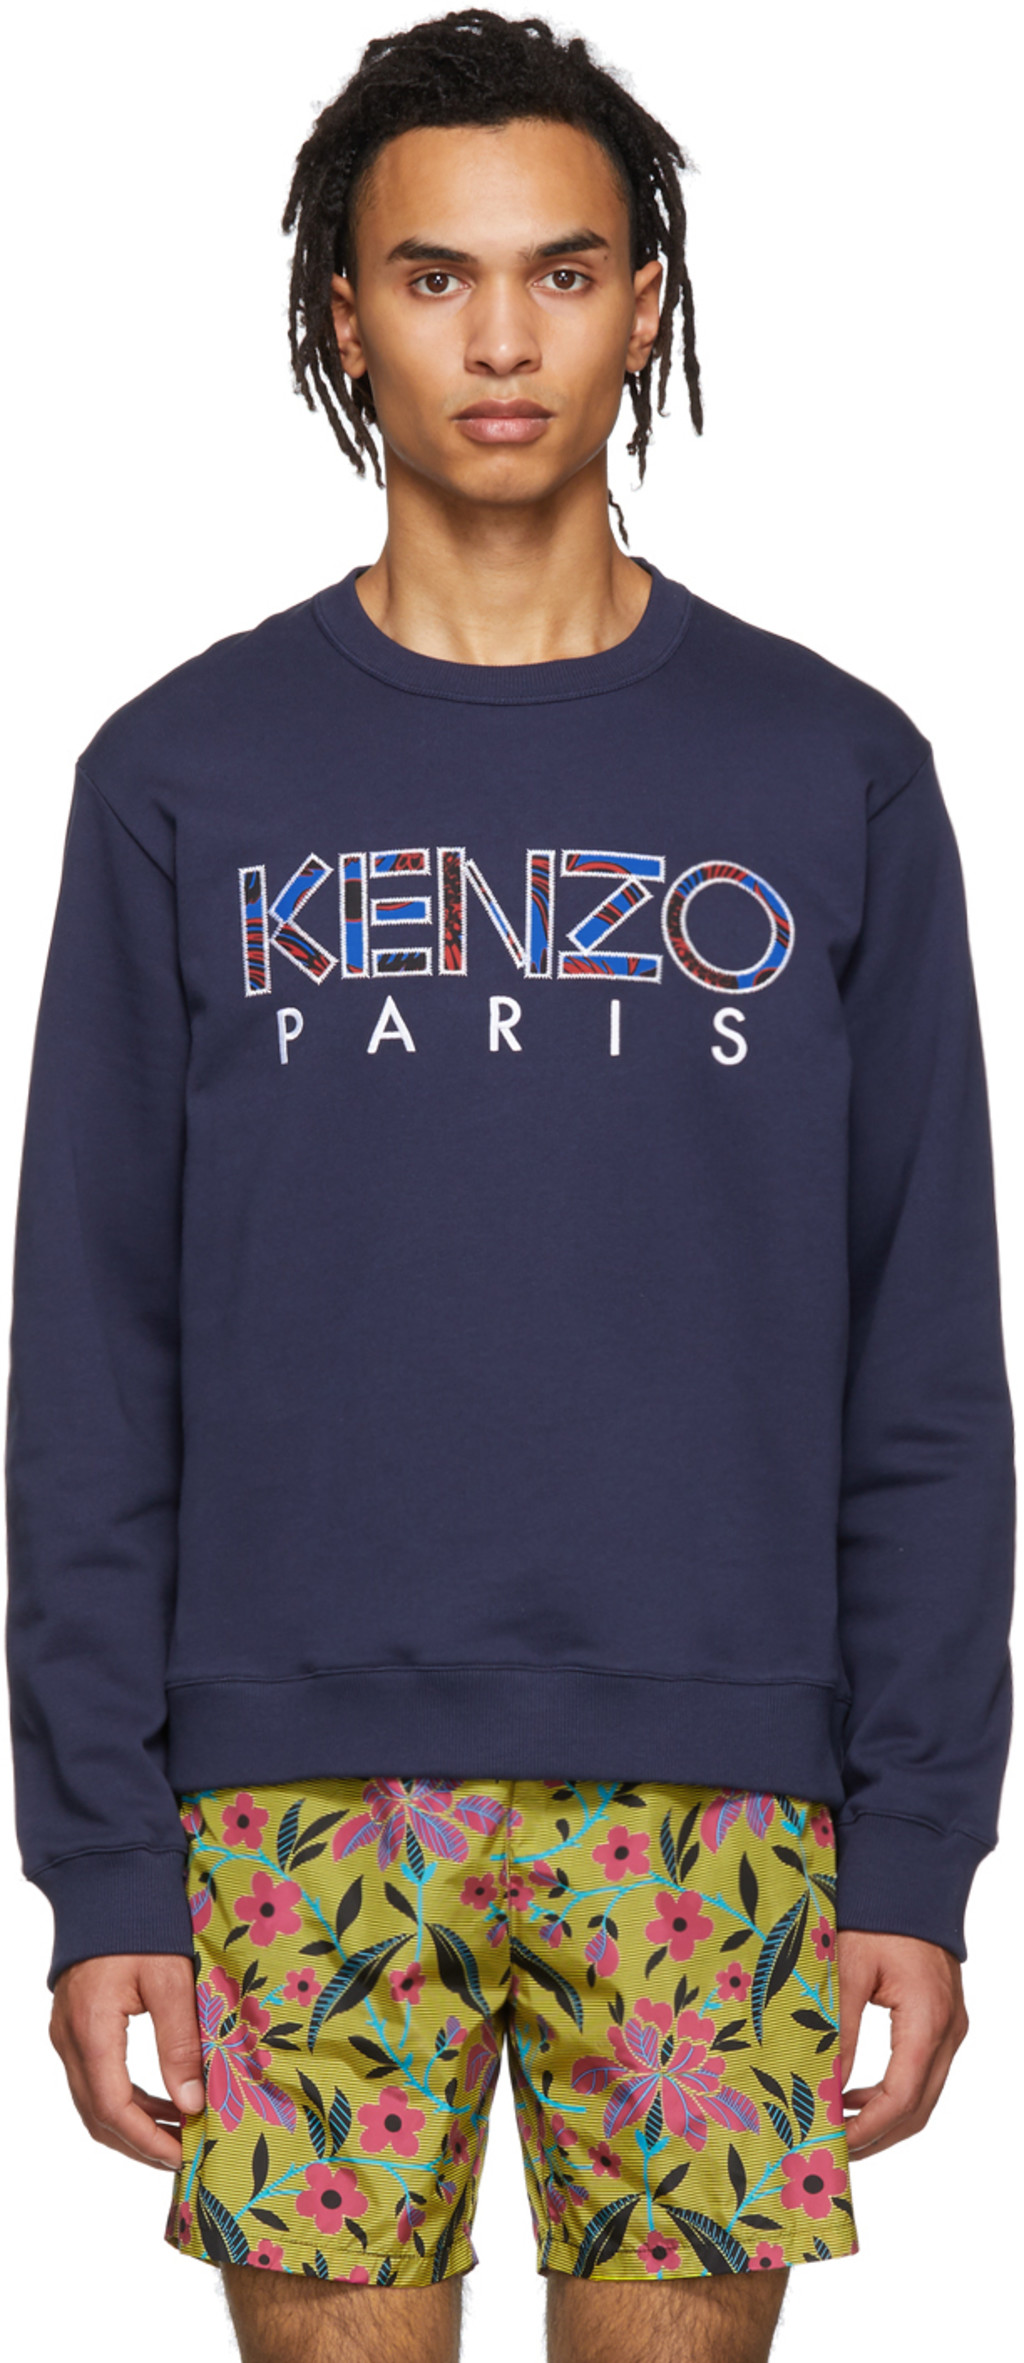 404fbd26 Kenzo for Men SS19 Collection | SSENSE UK